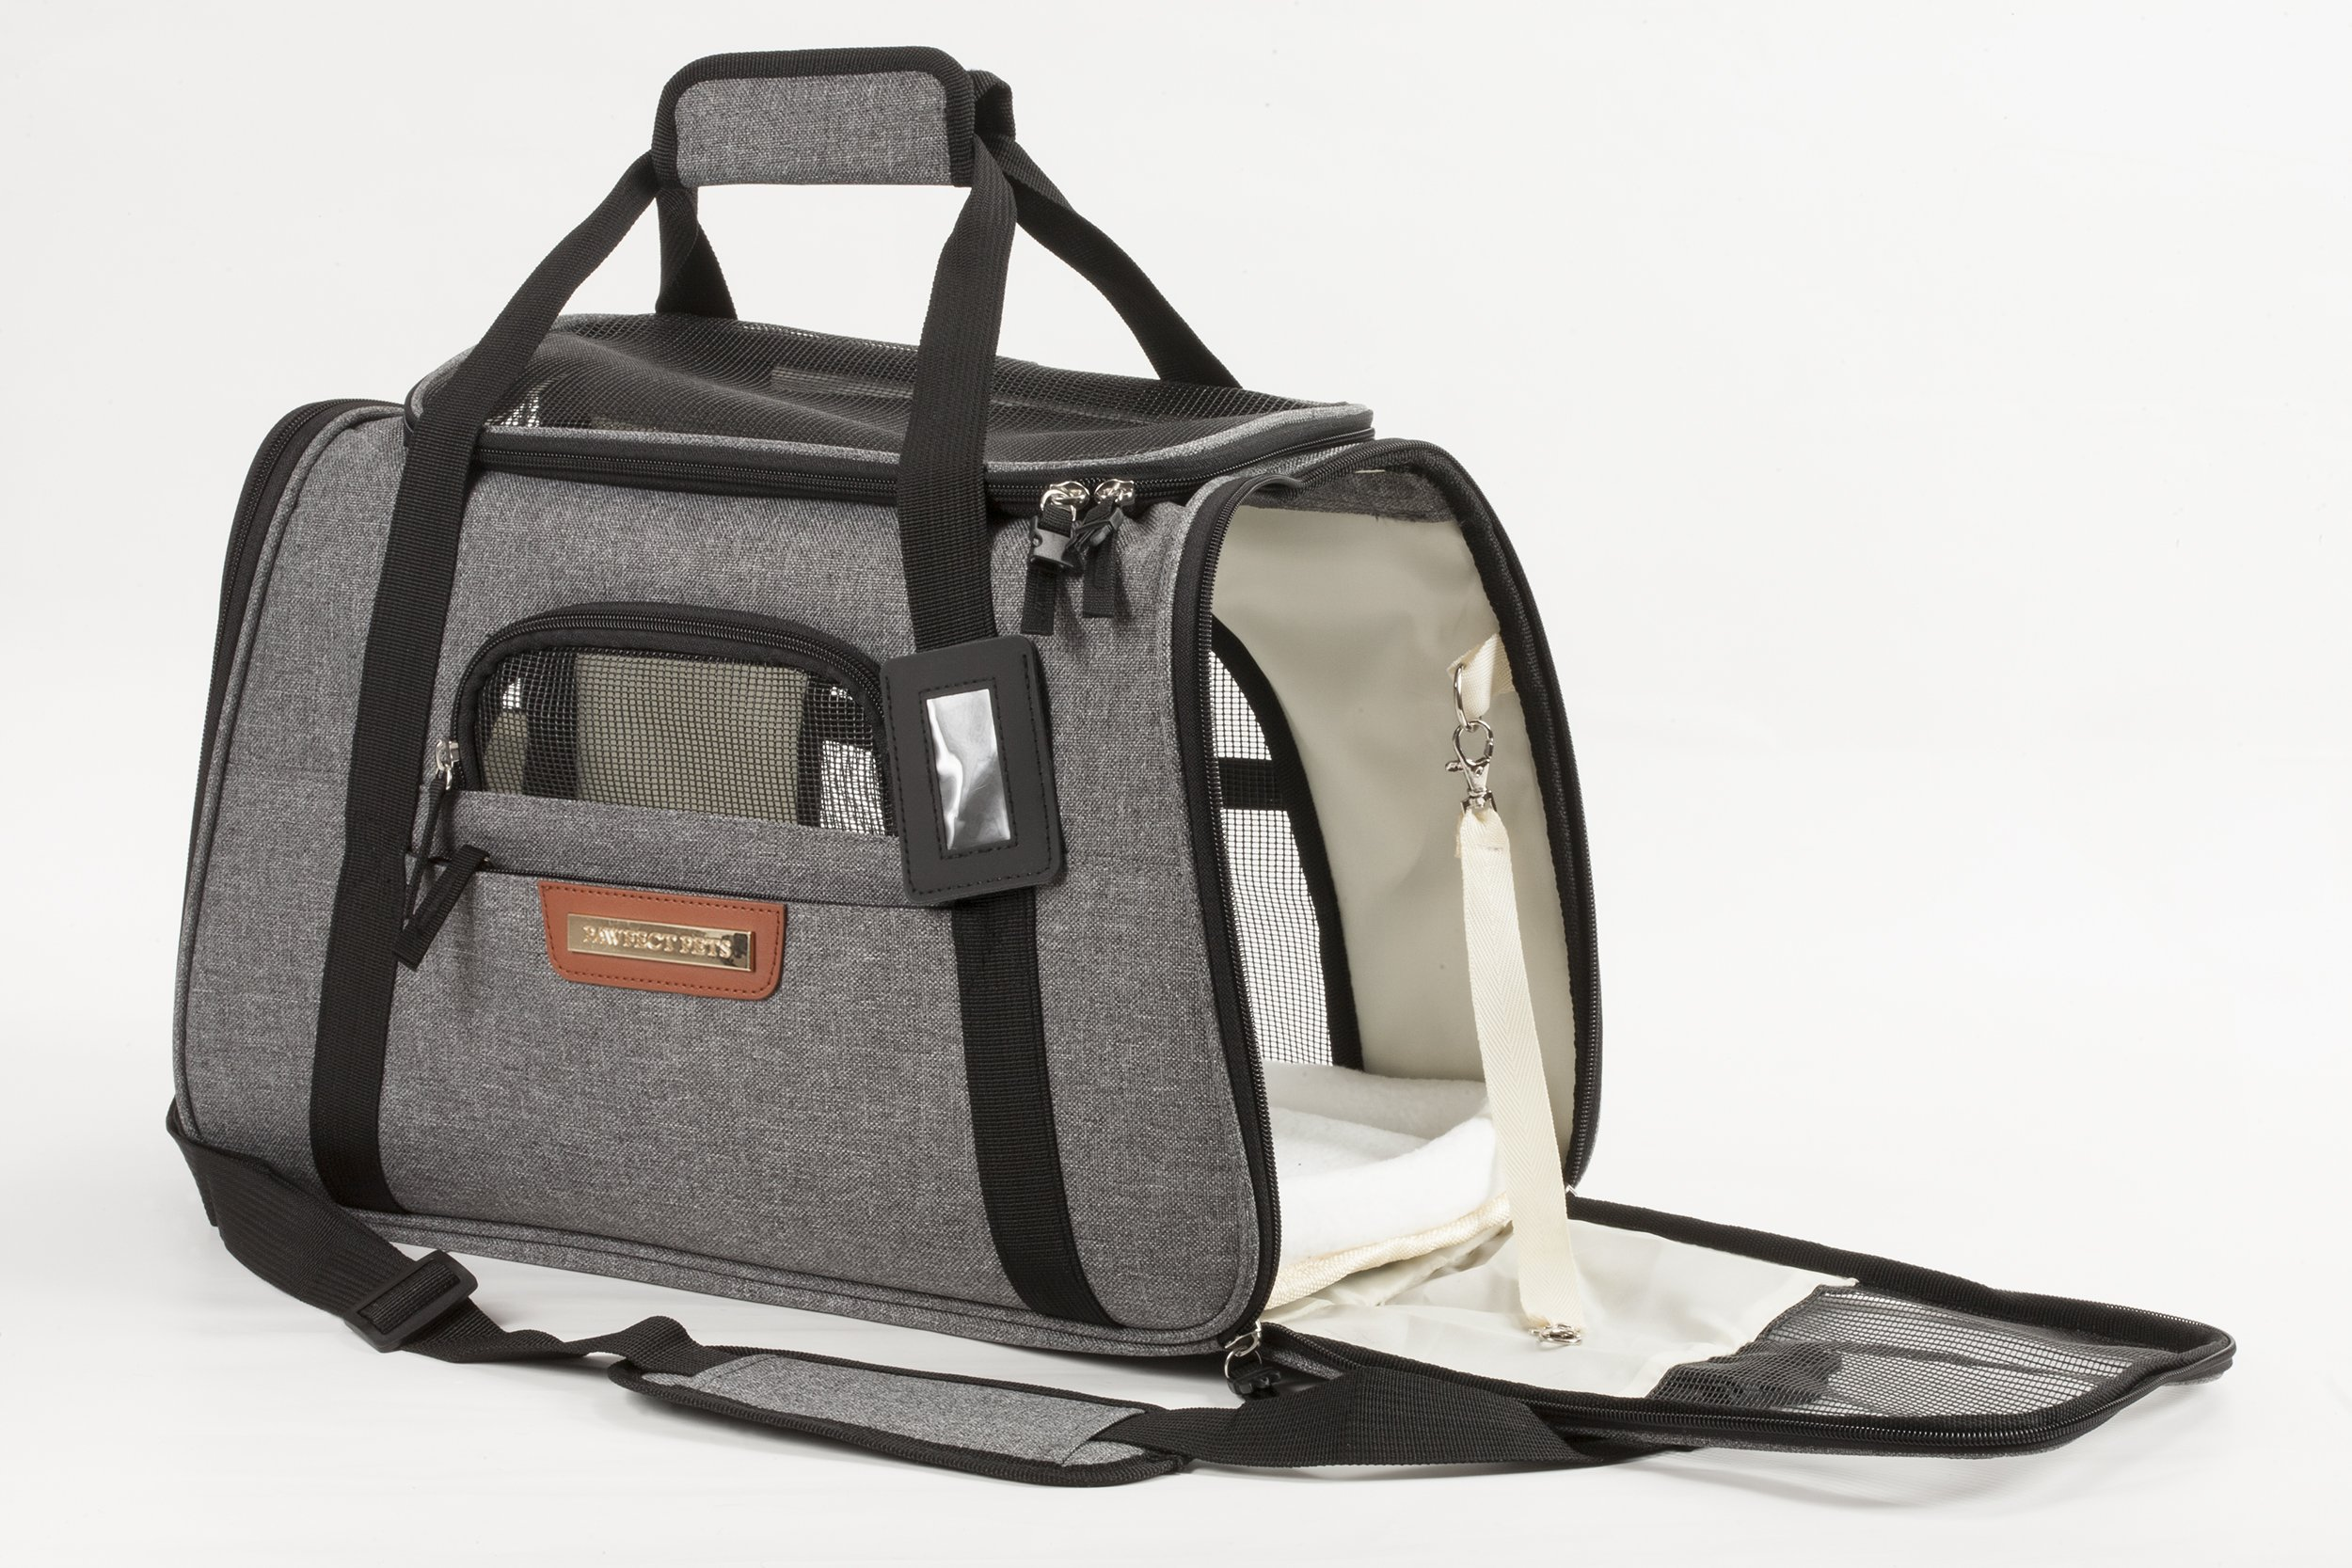 Pawfect Pets Pet Travel Carrier, Soft-Sided with Two Pet Mats for Small Dogs and Cats (Grey) by Pawfect Pets (Image #2)